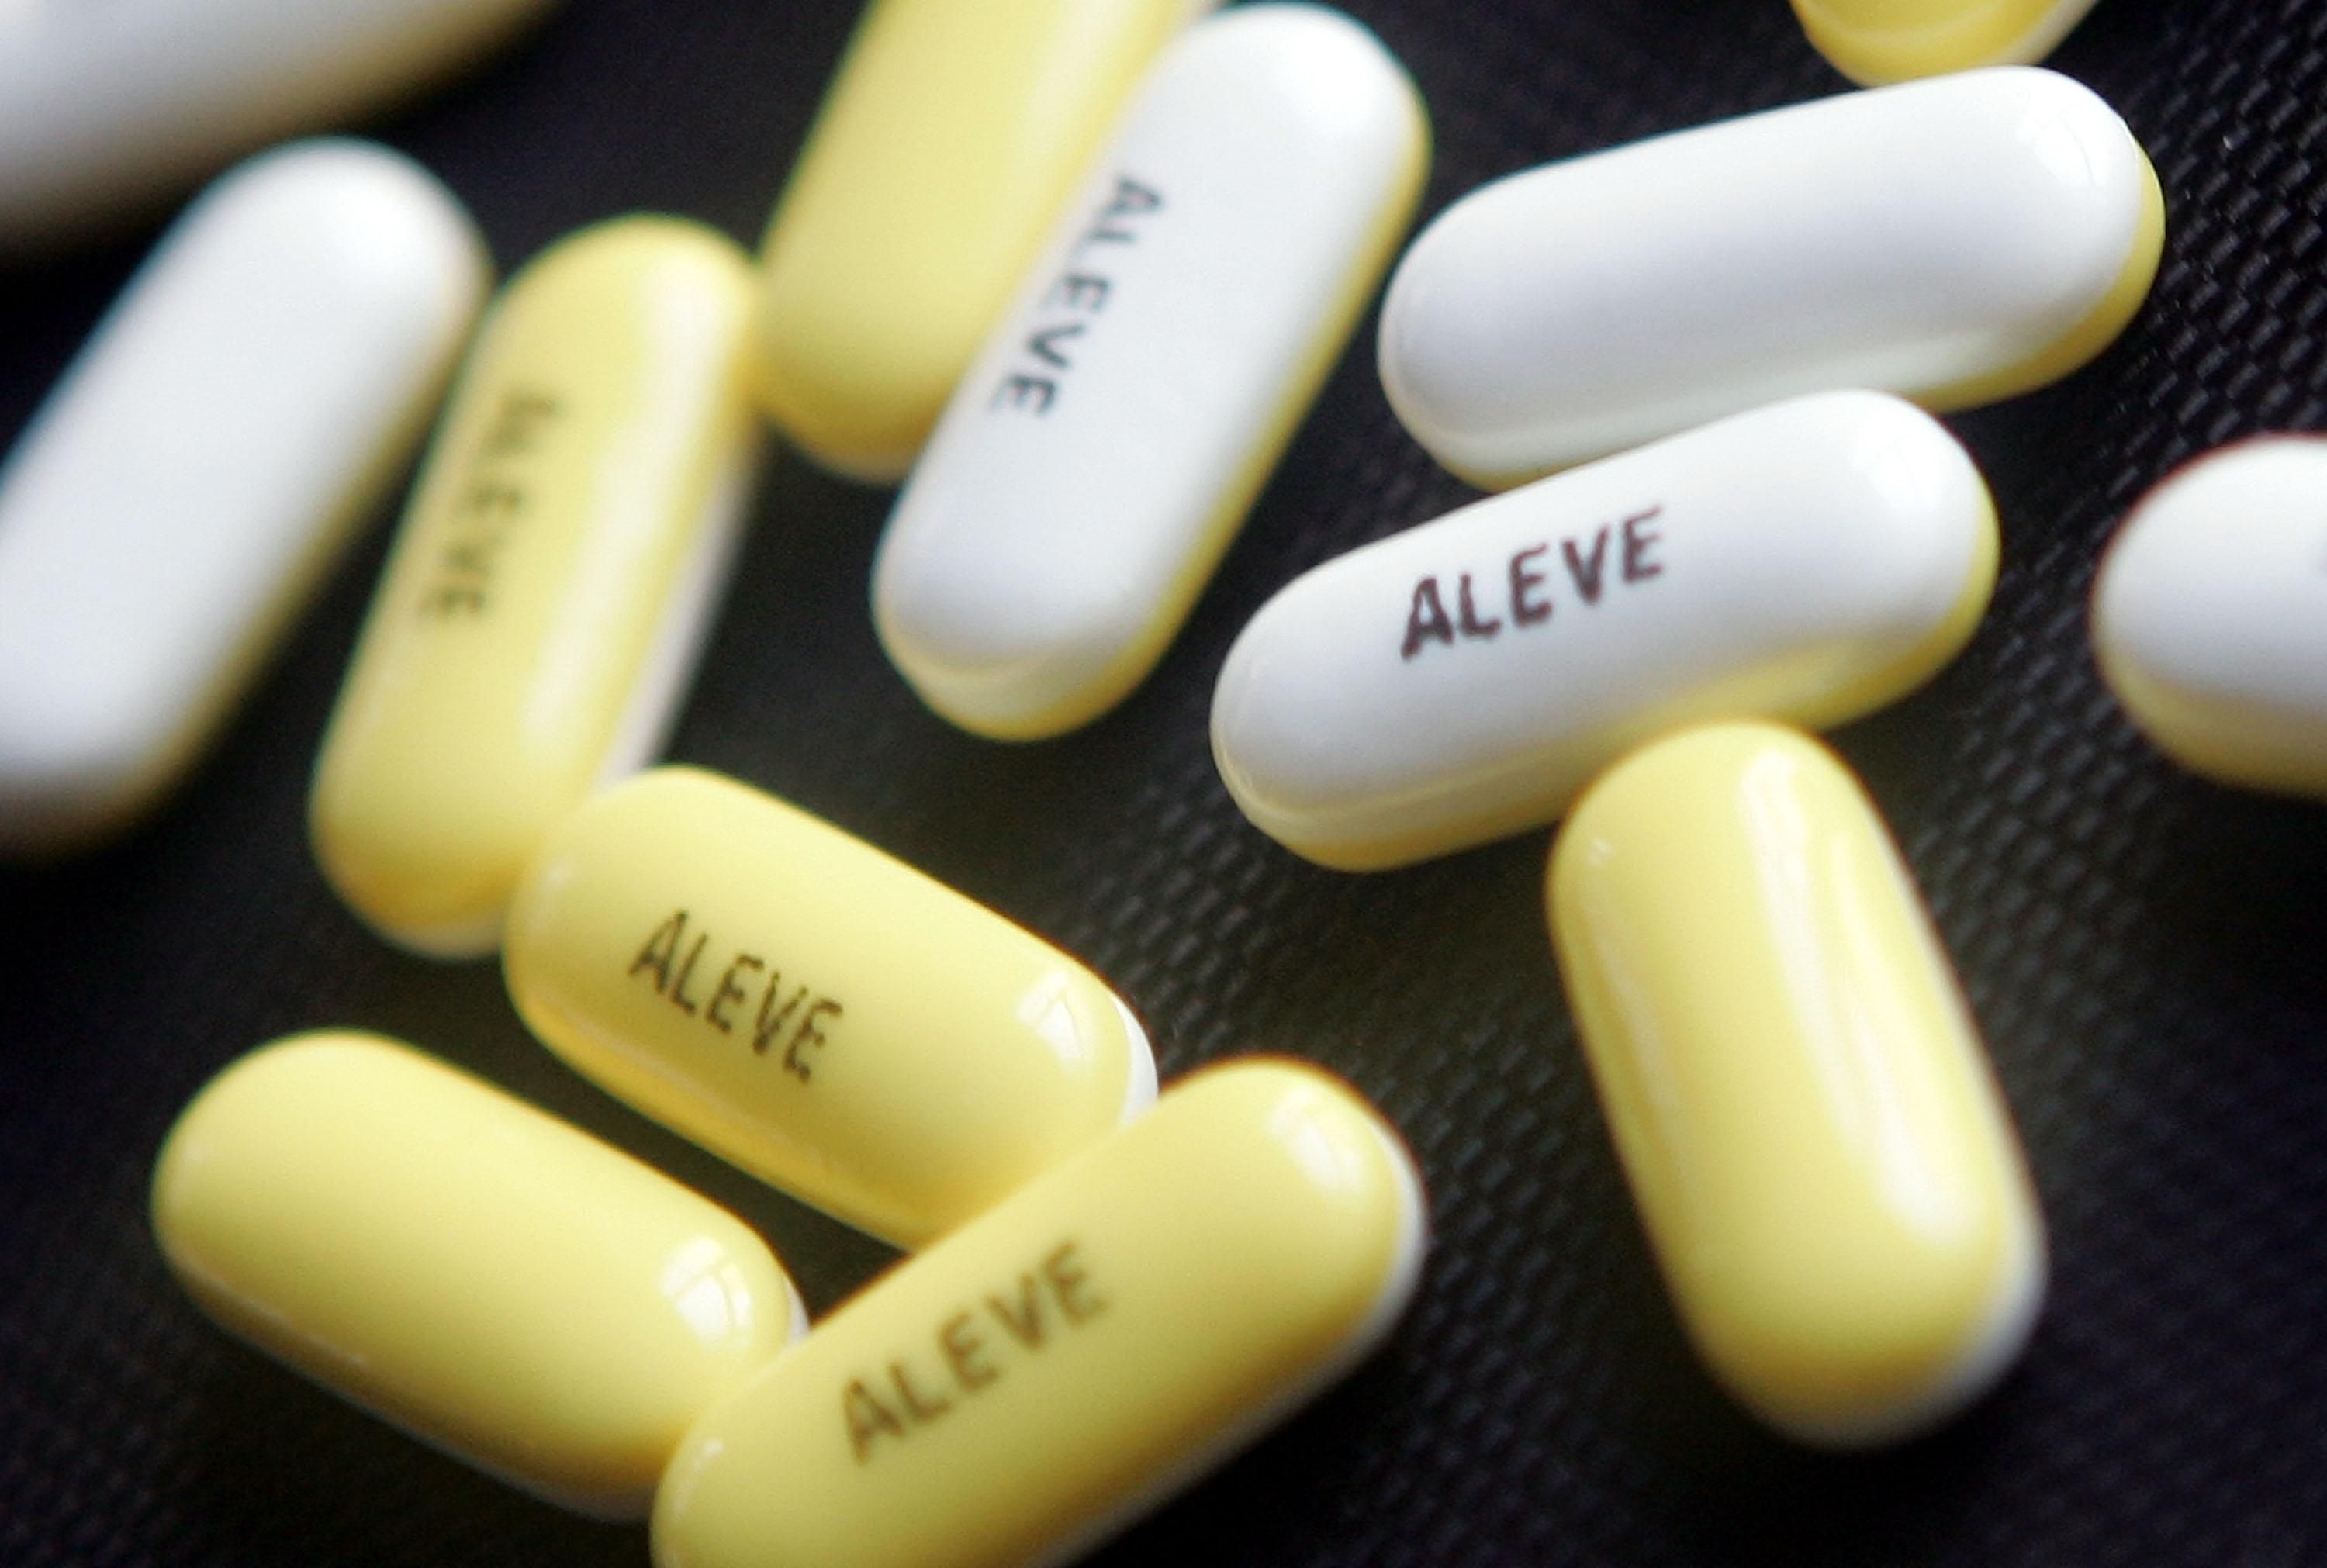 Naproxen: What You Need to Know